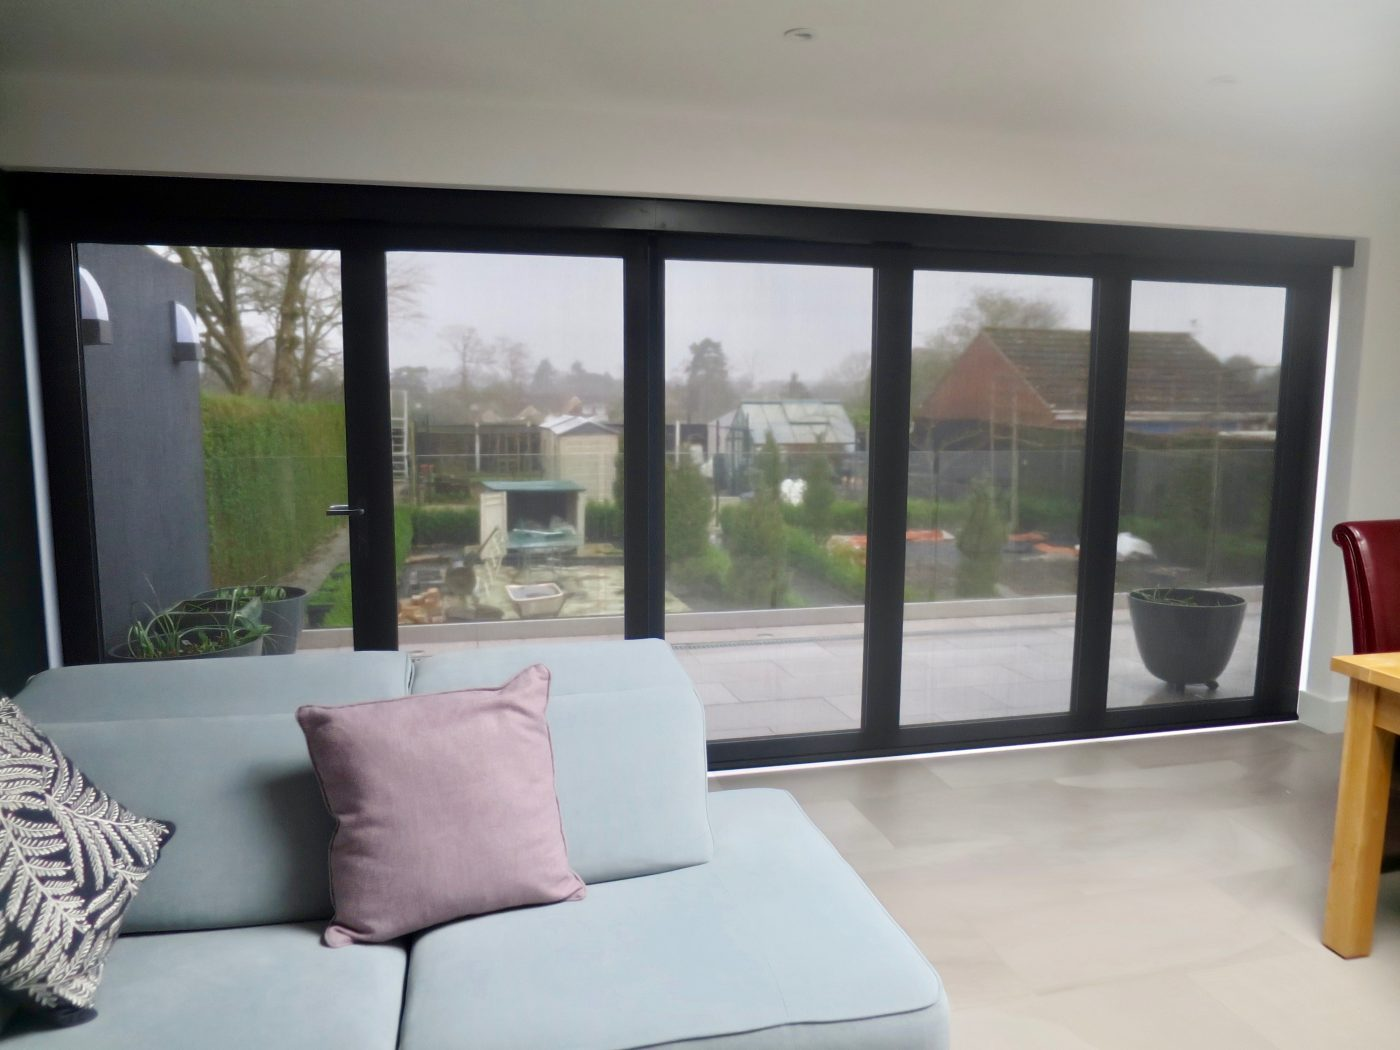 Benefits of Electric Blinds for Bifold Doors The Electric Blind